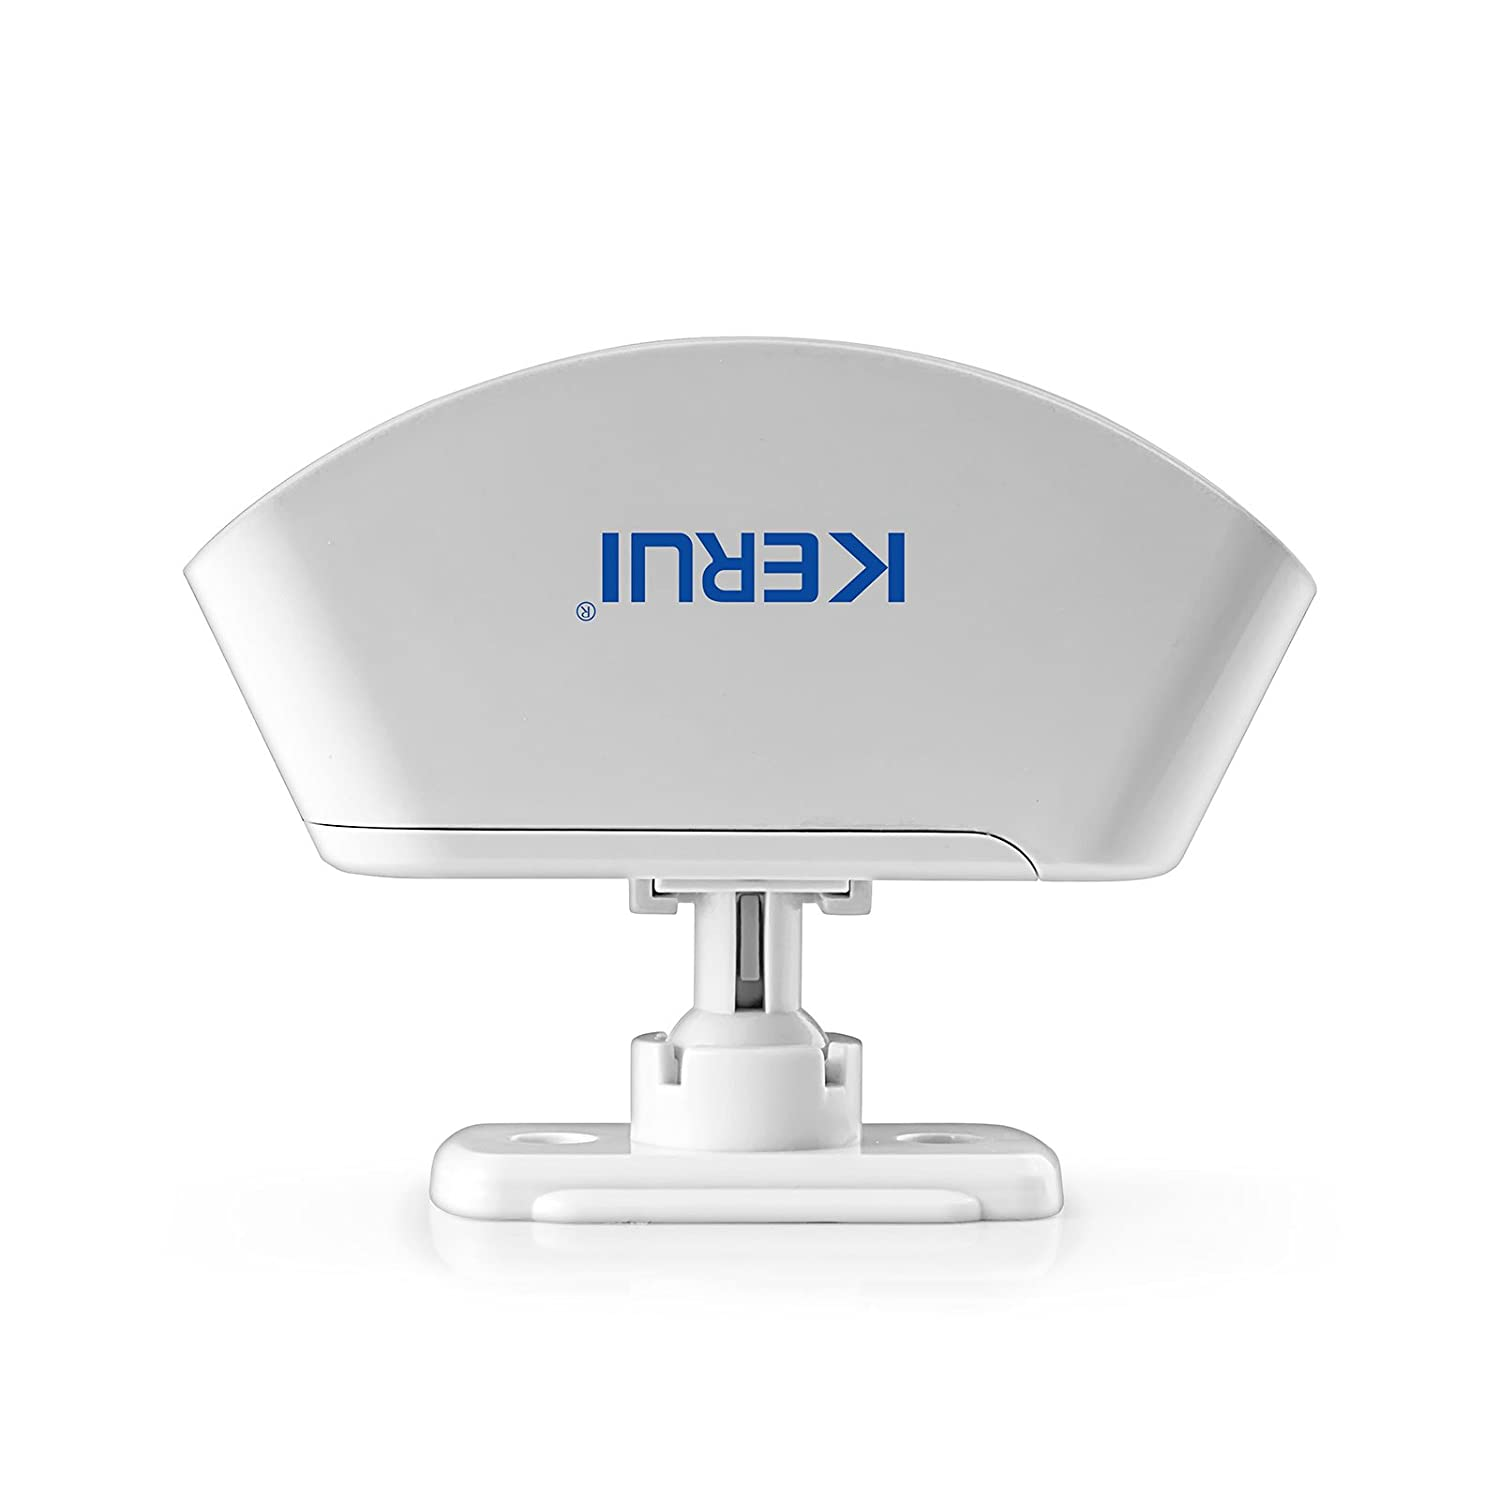 KERUI 433MHz Safety Driveway Patrol Infrared Wireless Intelligent PIR Motion Detector For GSM PSTN Home Security Alert Alarm System be notified of your surroundings KERUI-P819